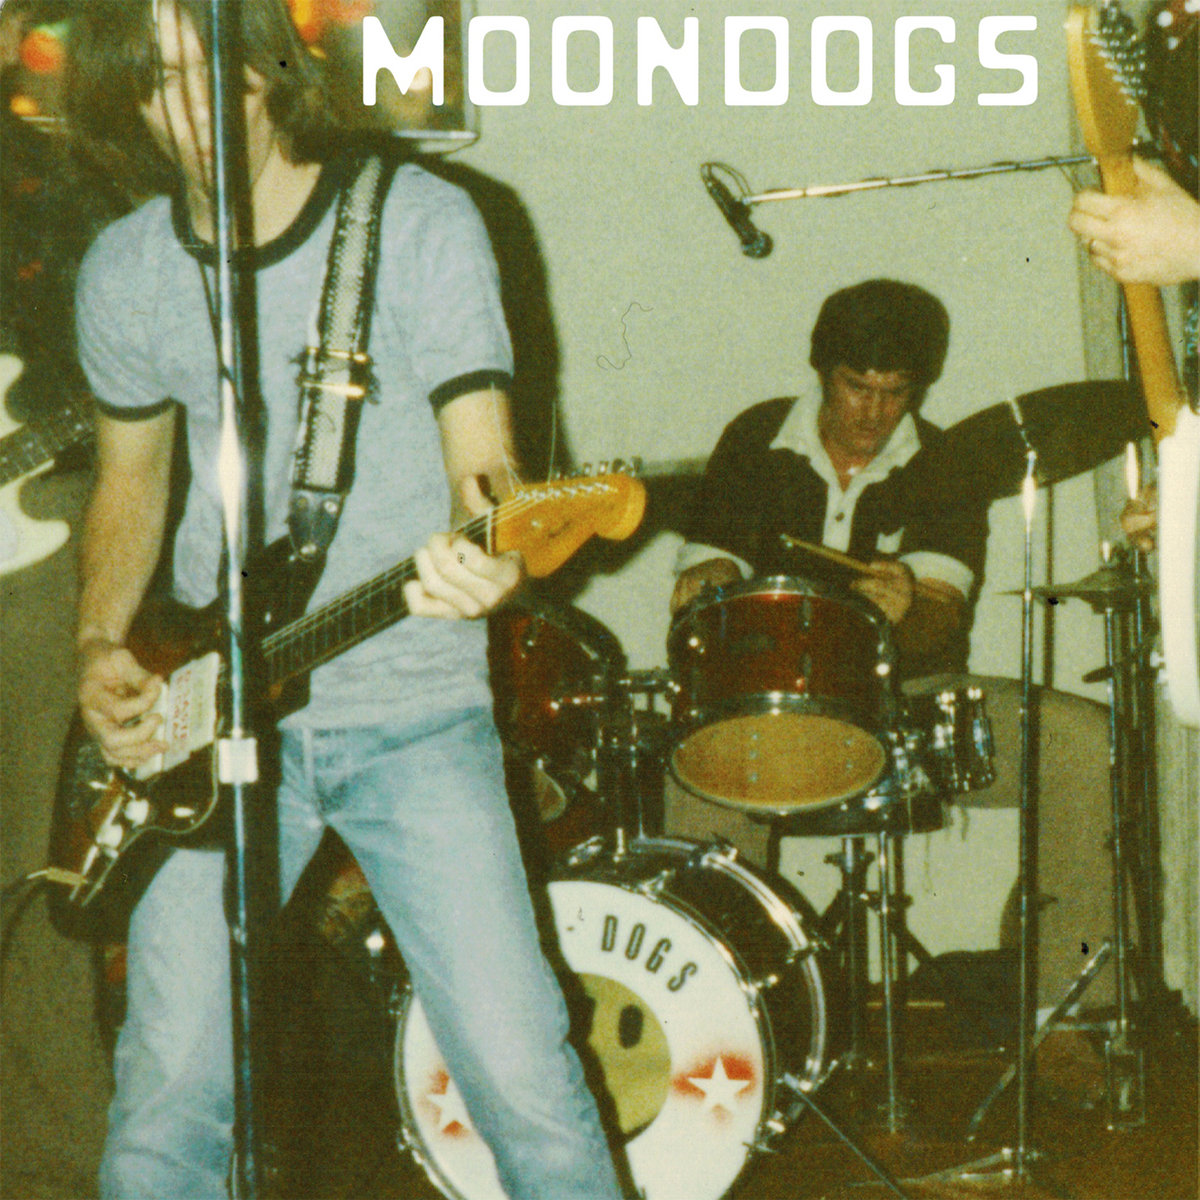 Image result for moondogs when sixteen wasnt so sweet